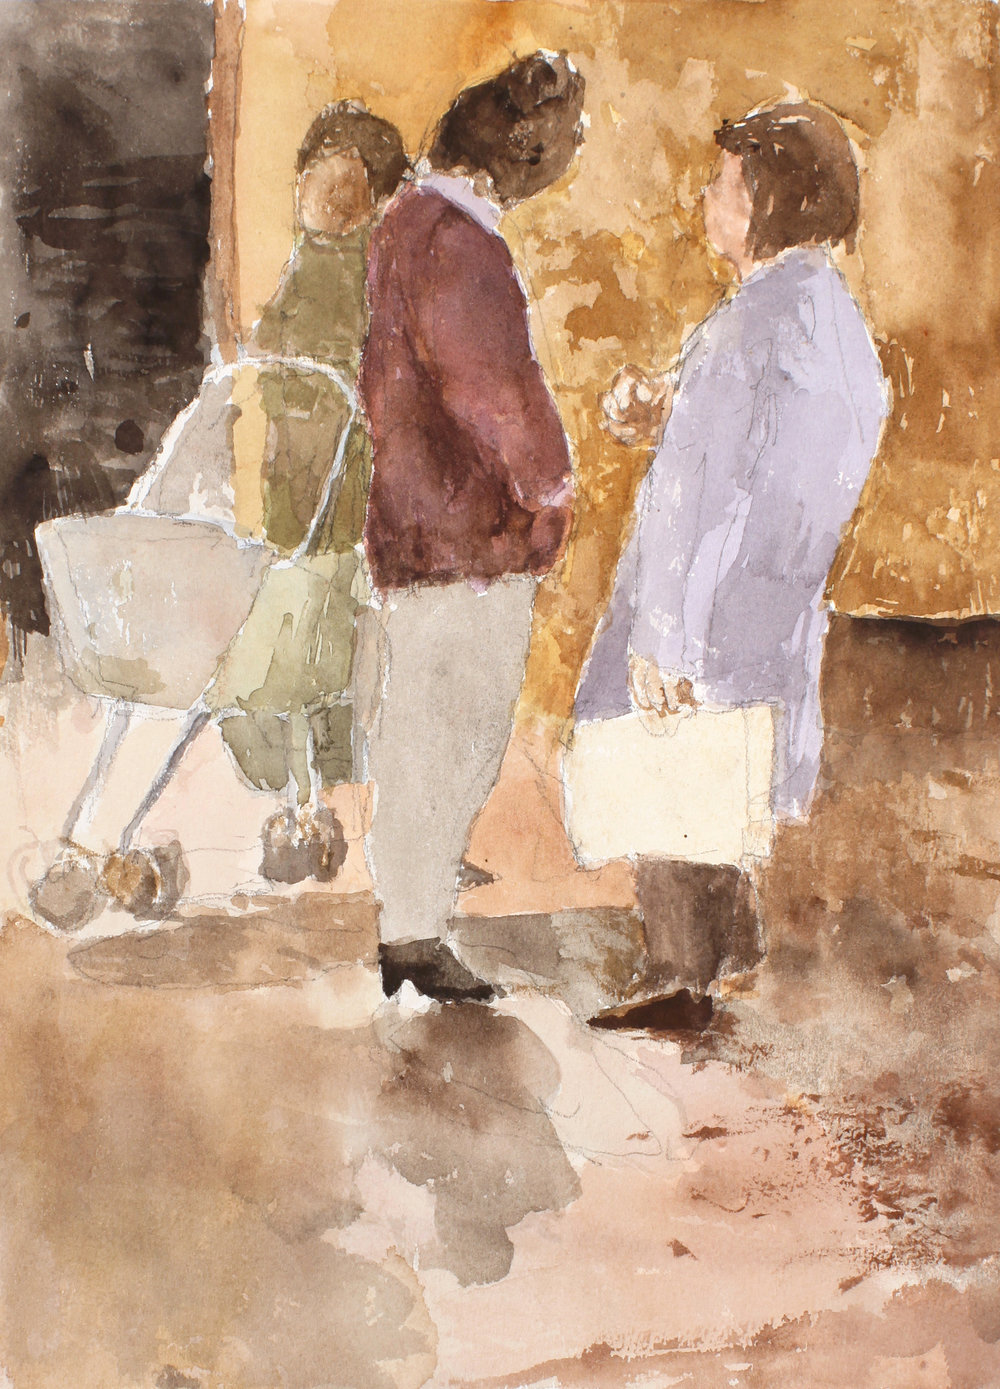 1994_Women_with_Pram_watercolour_on_paper_15x11in_WPF644.jpg